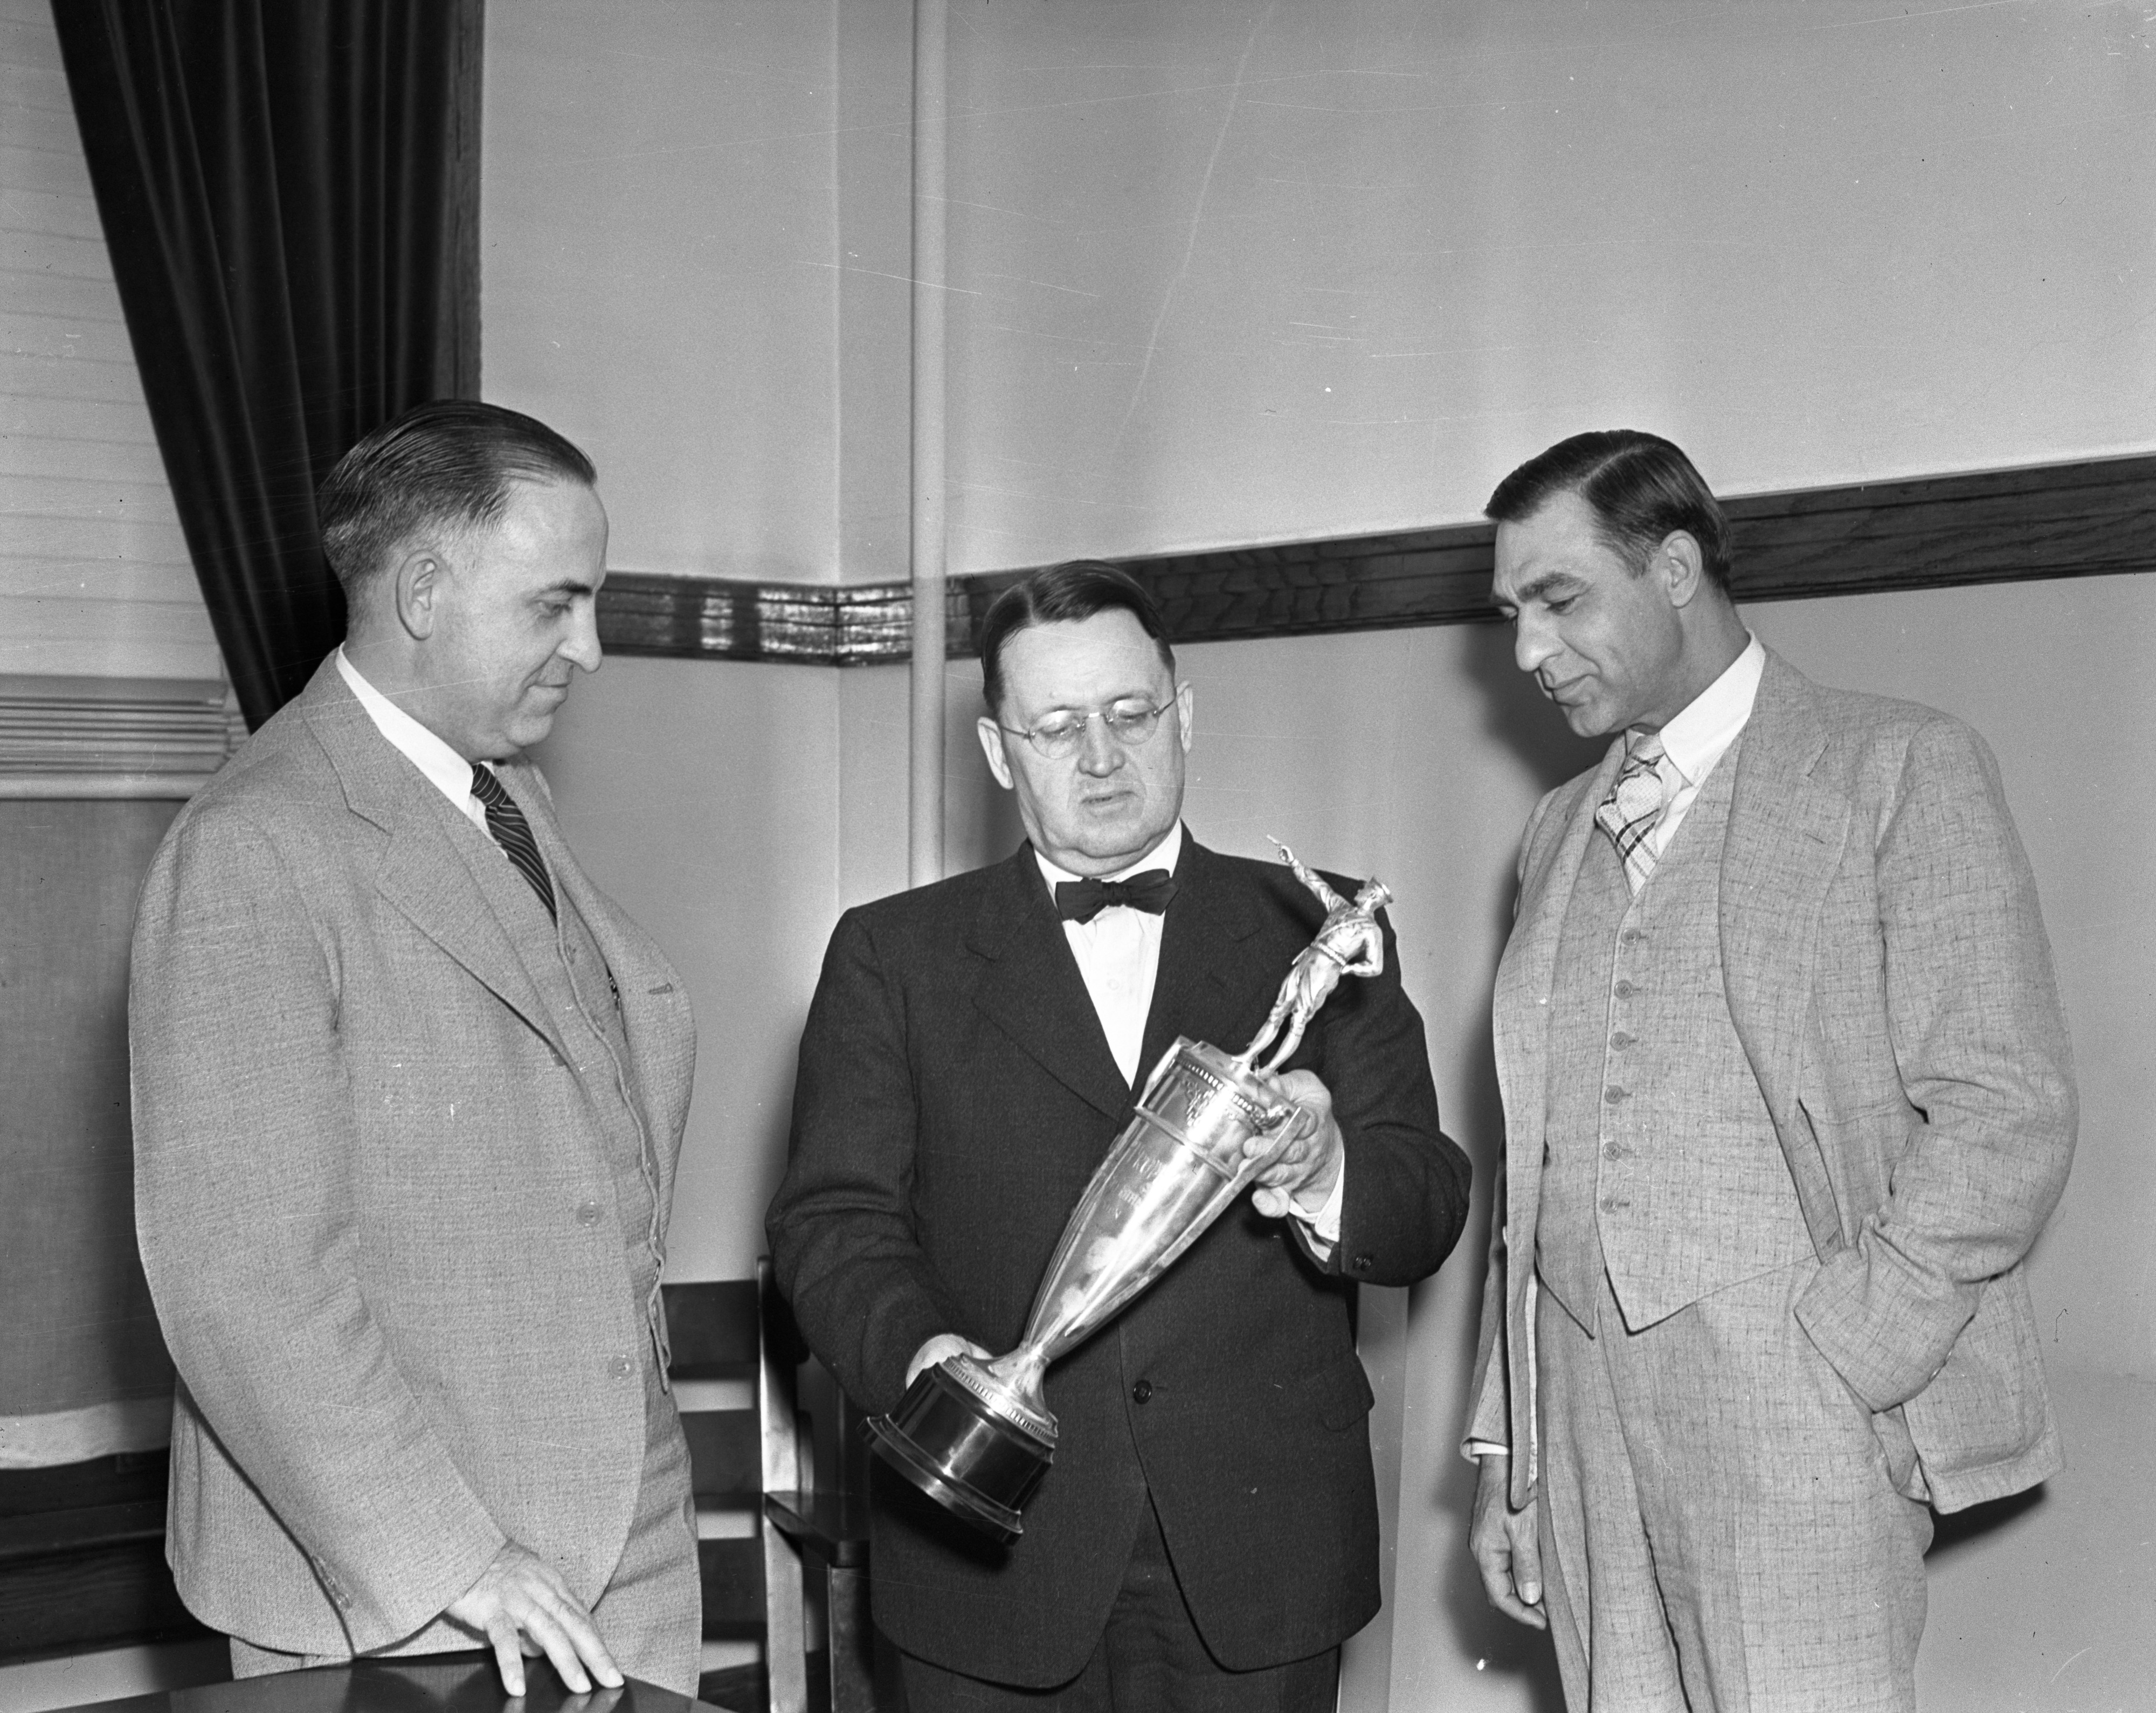 Marksmanship Memorial Trophy Presented To The Ann Arbor Police Department, June 1937 image